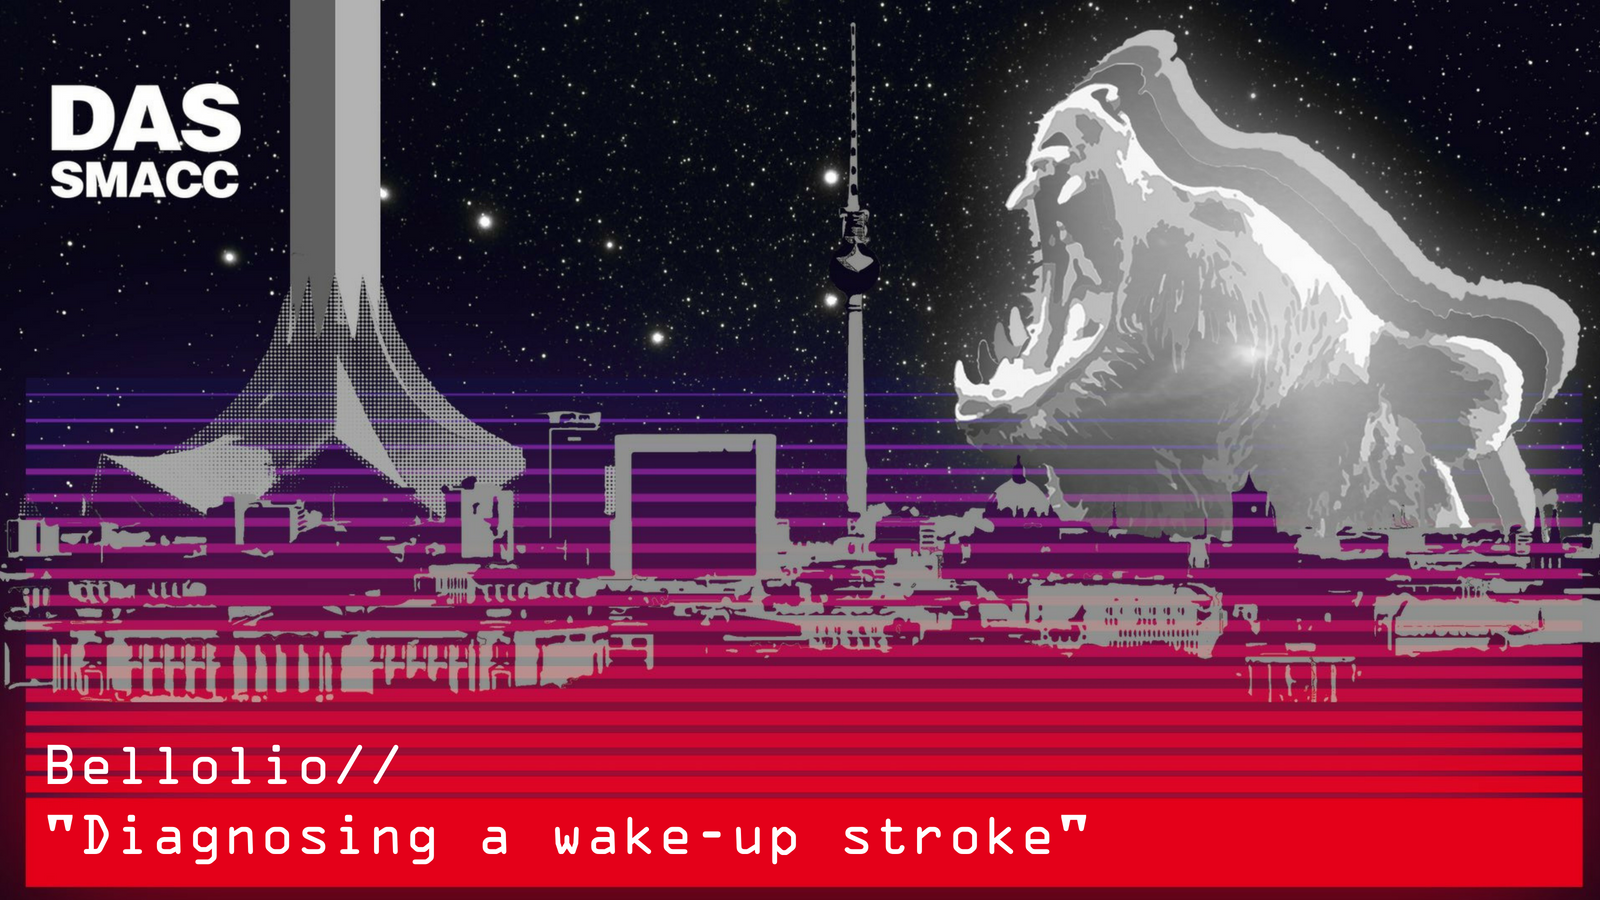 Treatment of wake-up stroke in neuro critical care